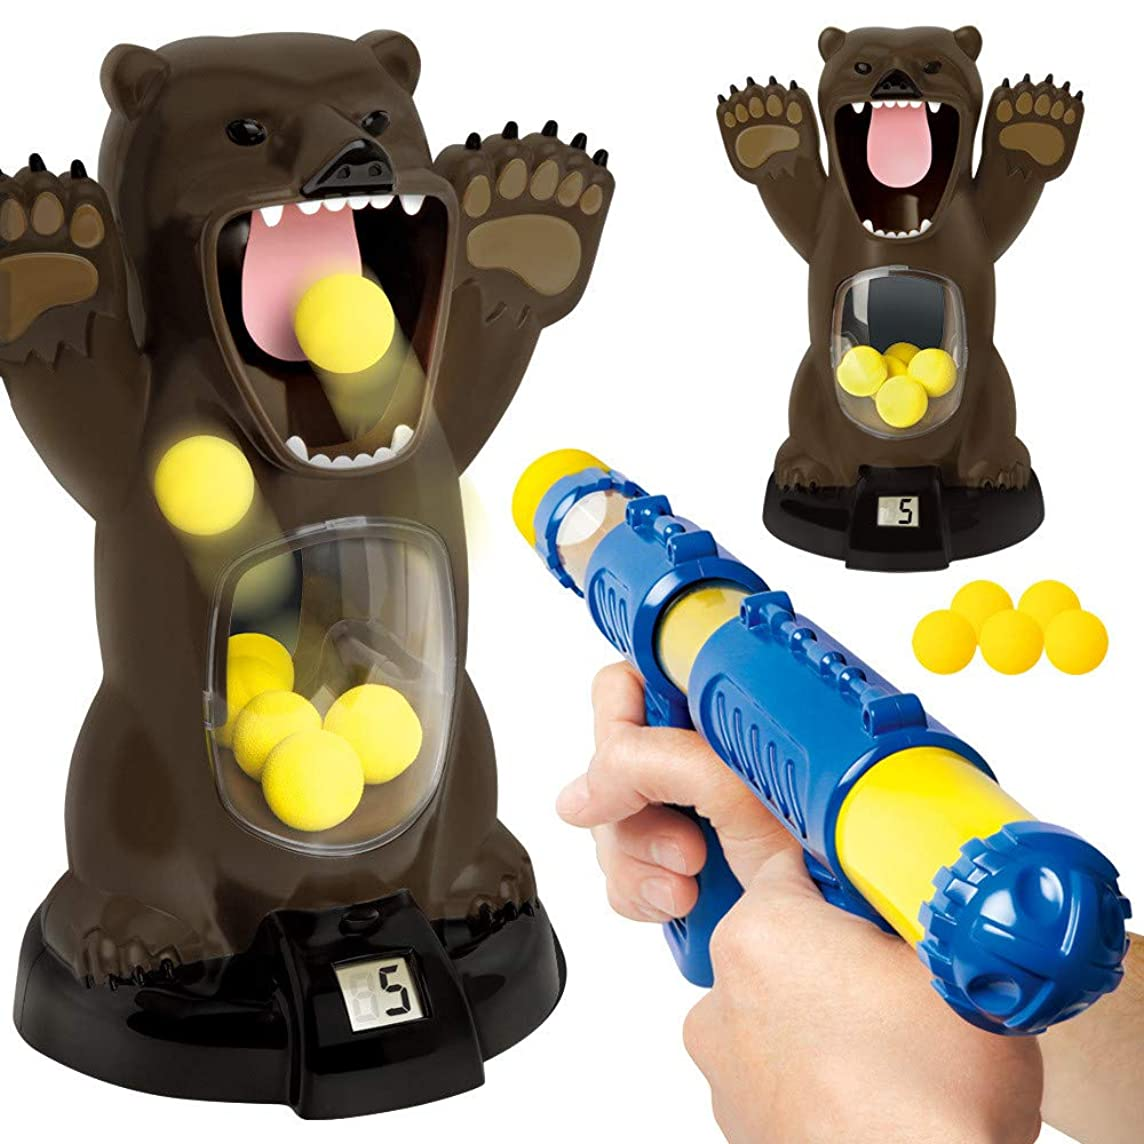 Ktyssp Novel Toy Scream Hungry Bear Electronic Shooting Game Party Toys with Sound for Kids